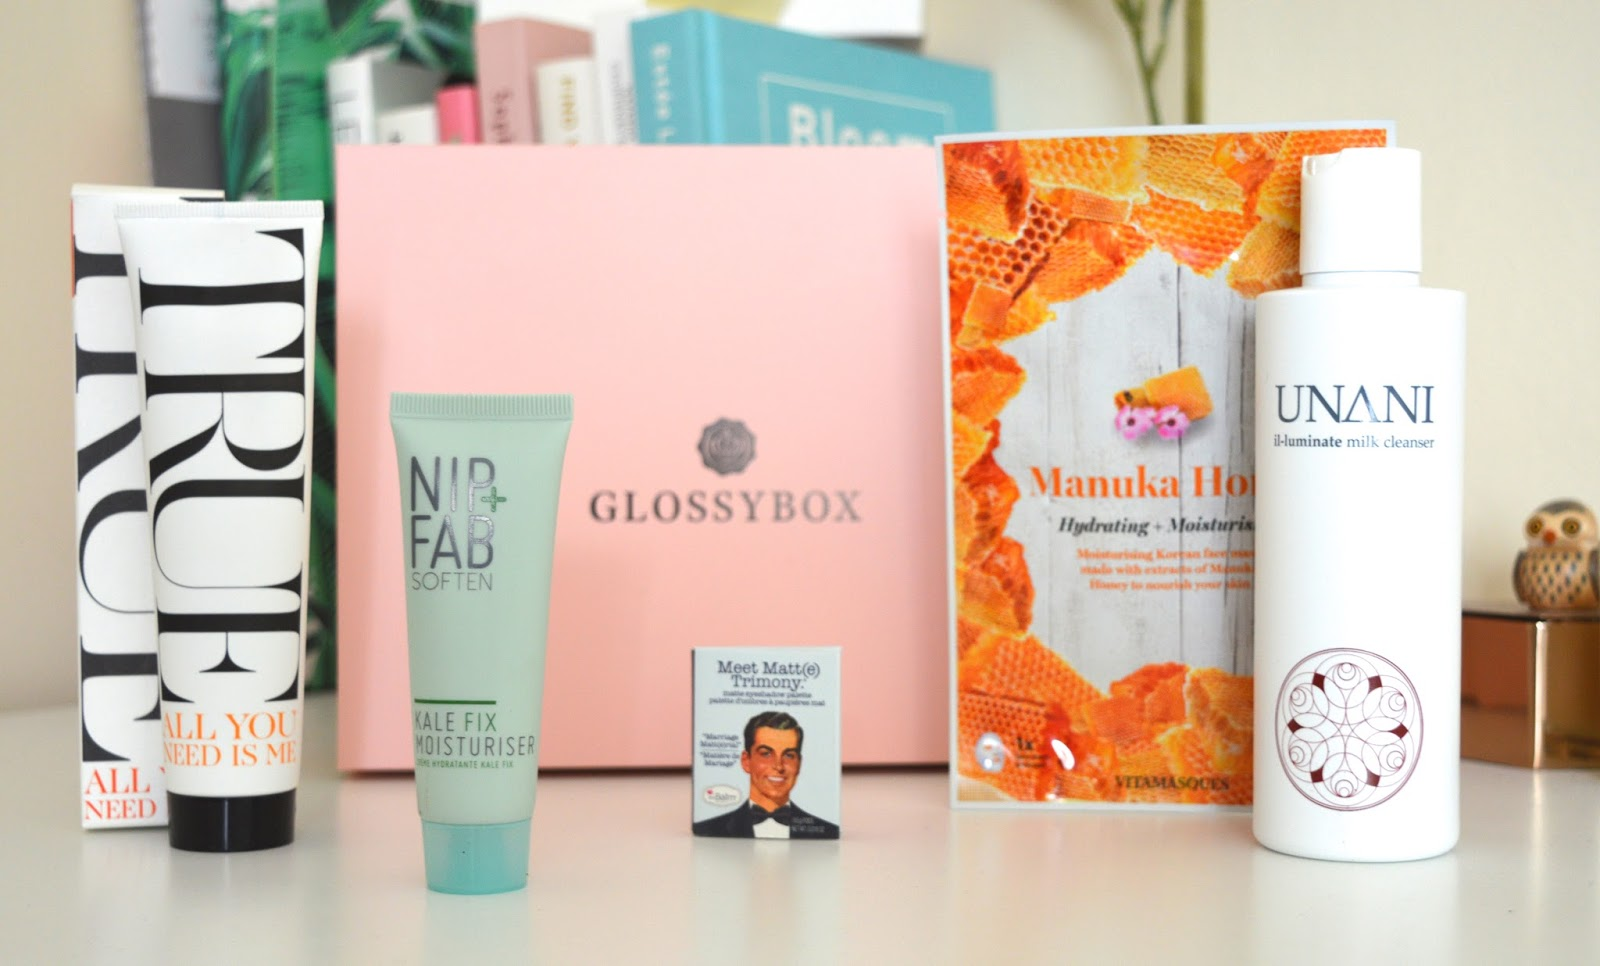 Best beauty boxes UK, Glossybox review, what are beauty boxes, UK beauty blog, Dalry Rose blog